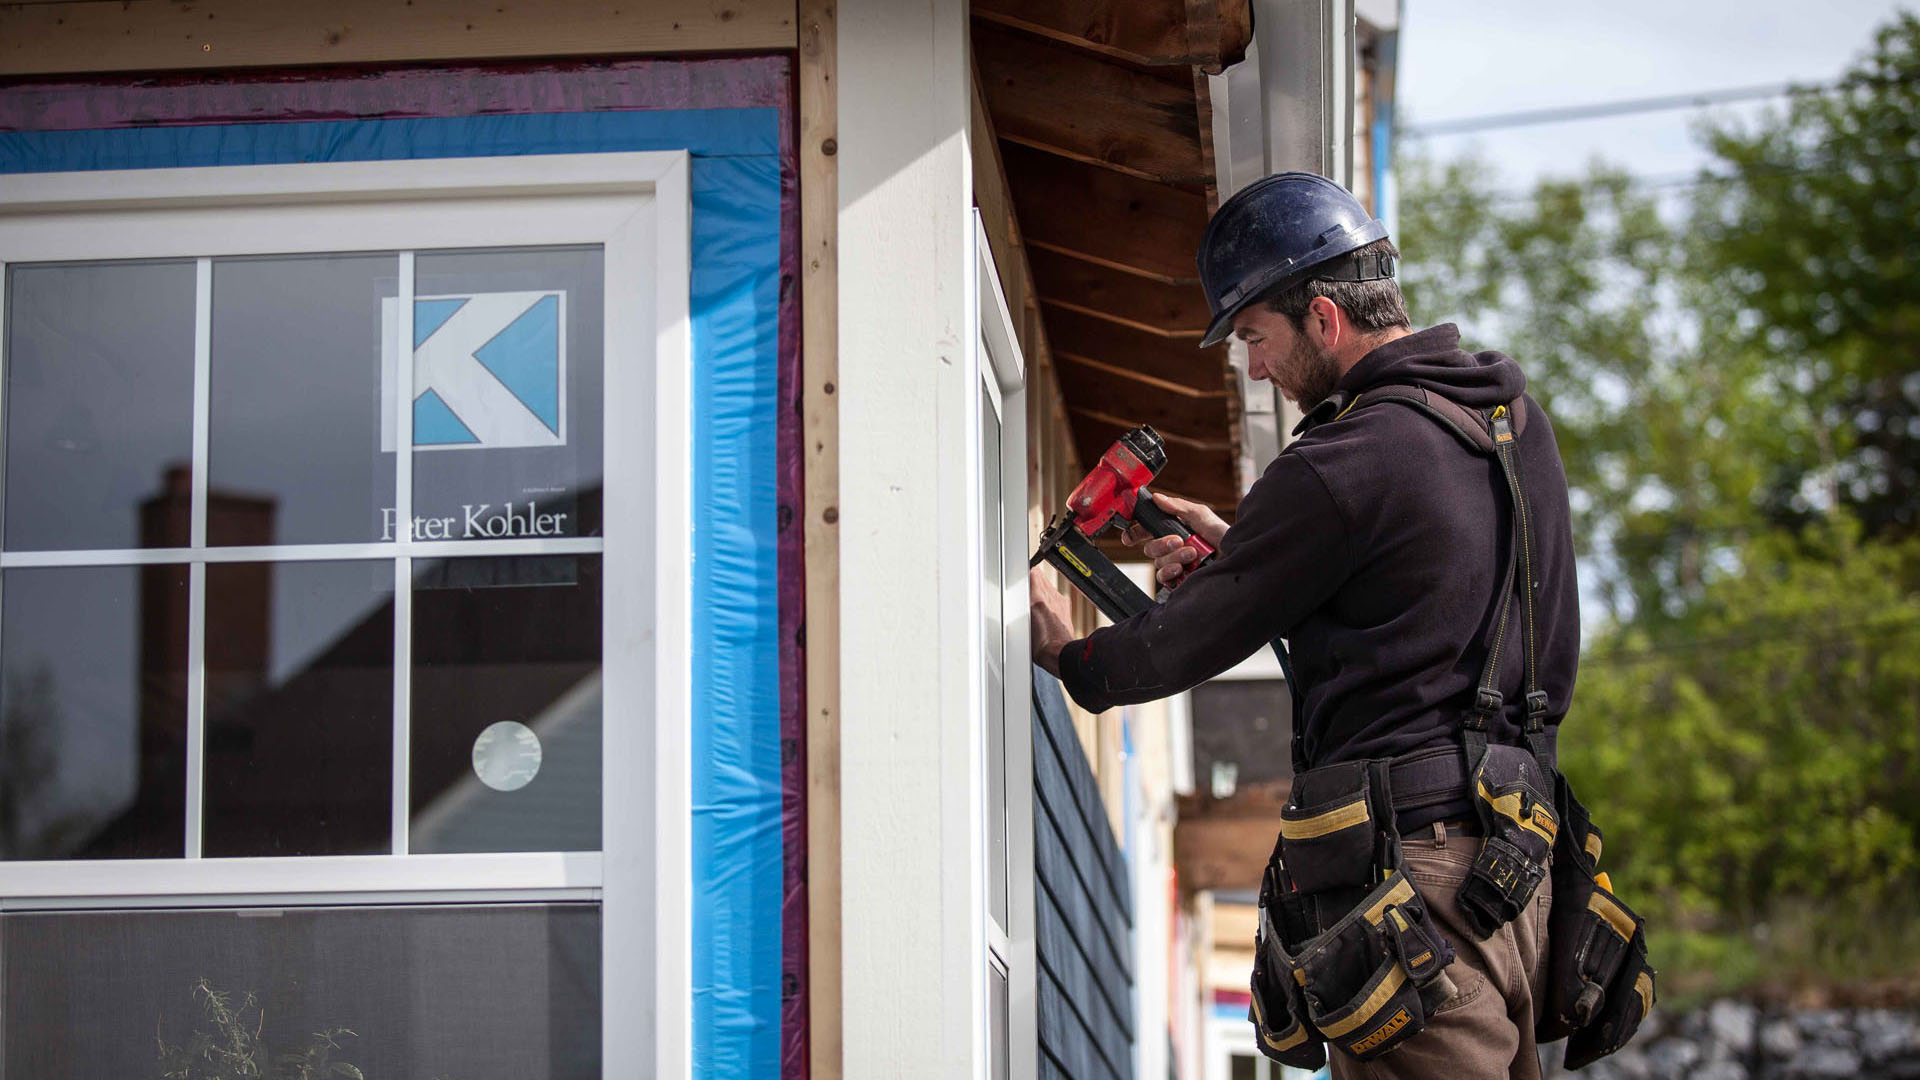 Premier Siding And Window Sales Free Measures Within The